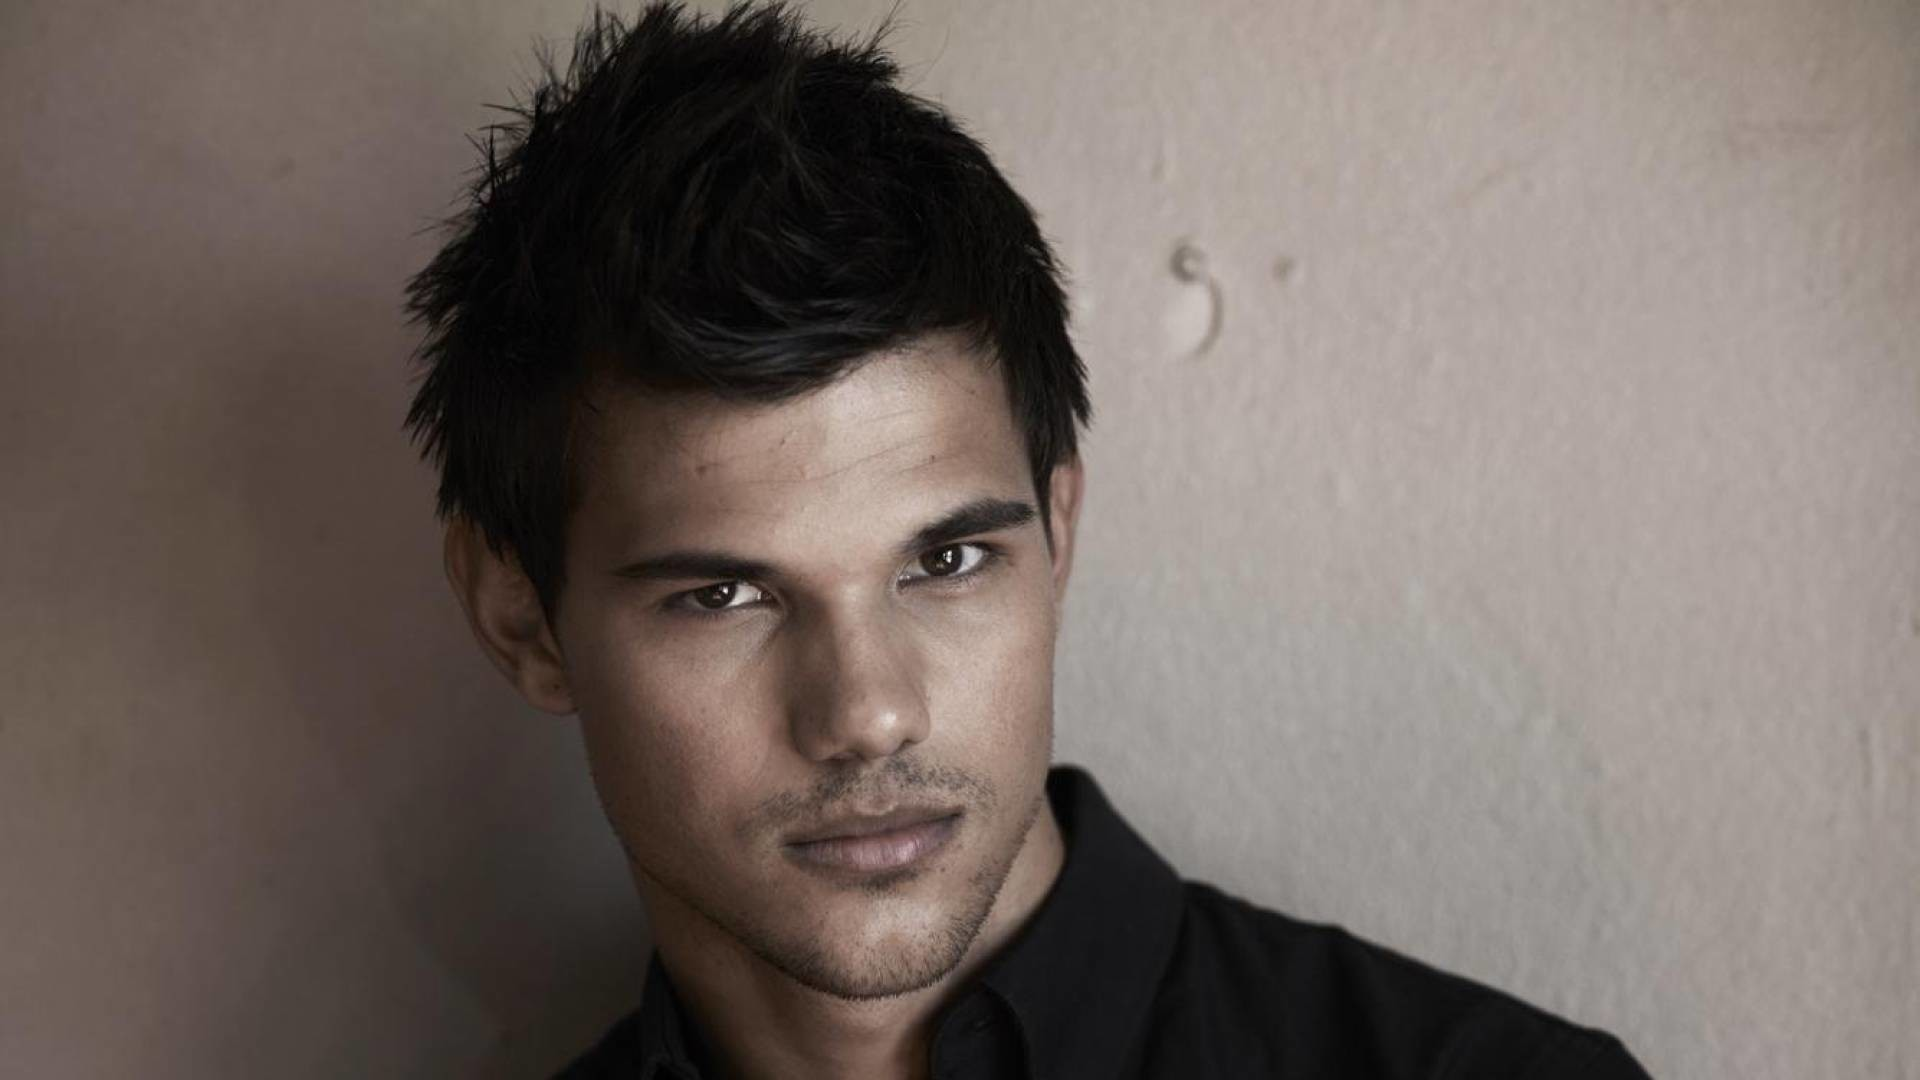 Taylor Lautner Backgrounds – Wallpaper, High Definition, High Quality .